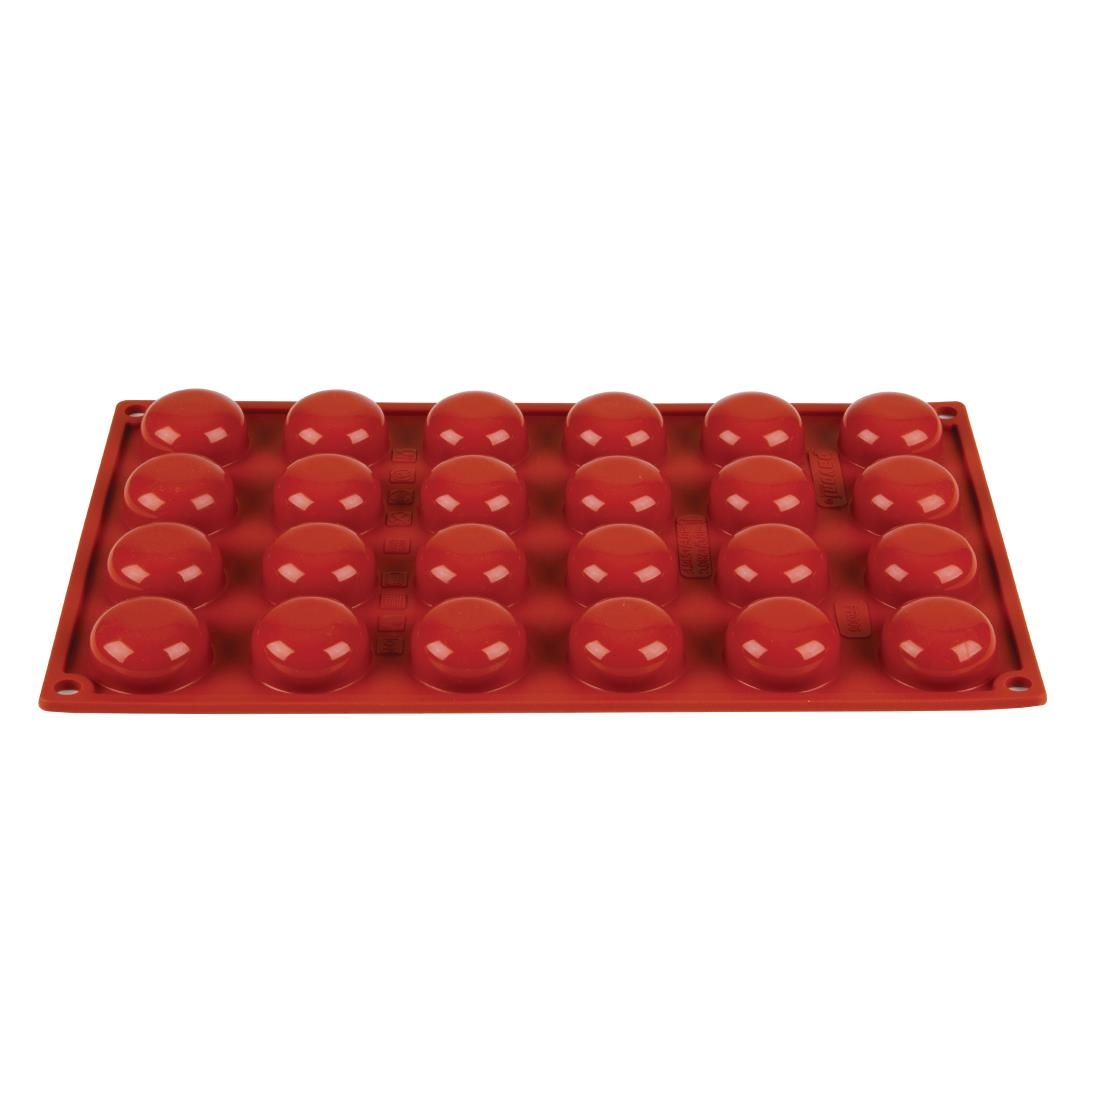 Pavoni Formaflex Silicone Pomponette Mould 24 Cup